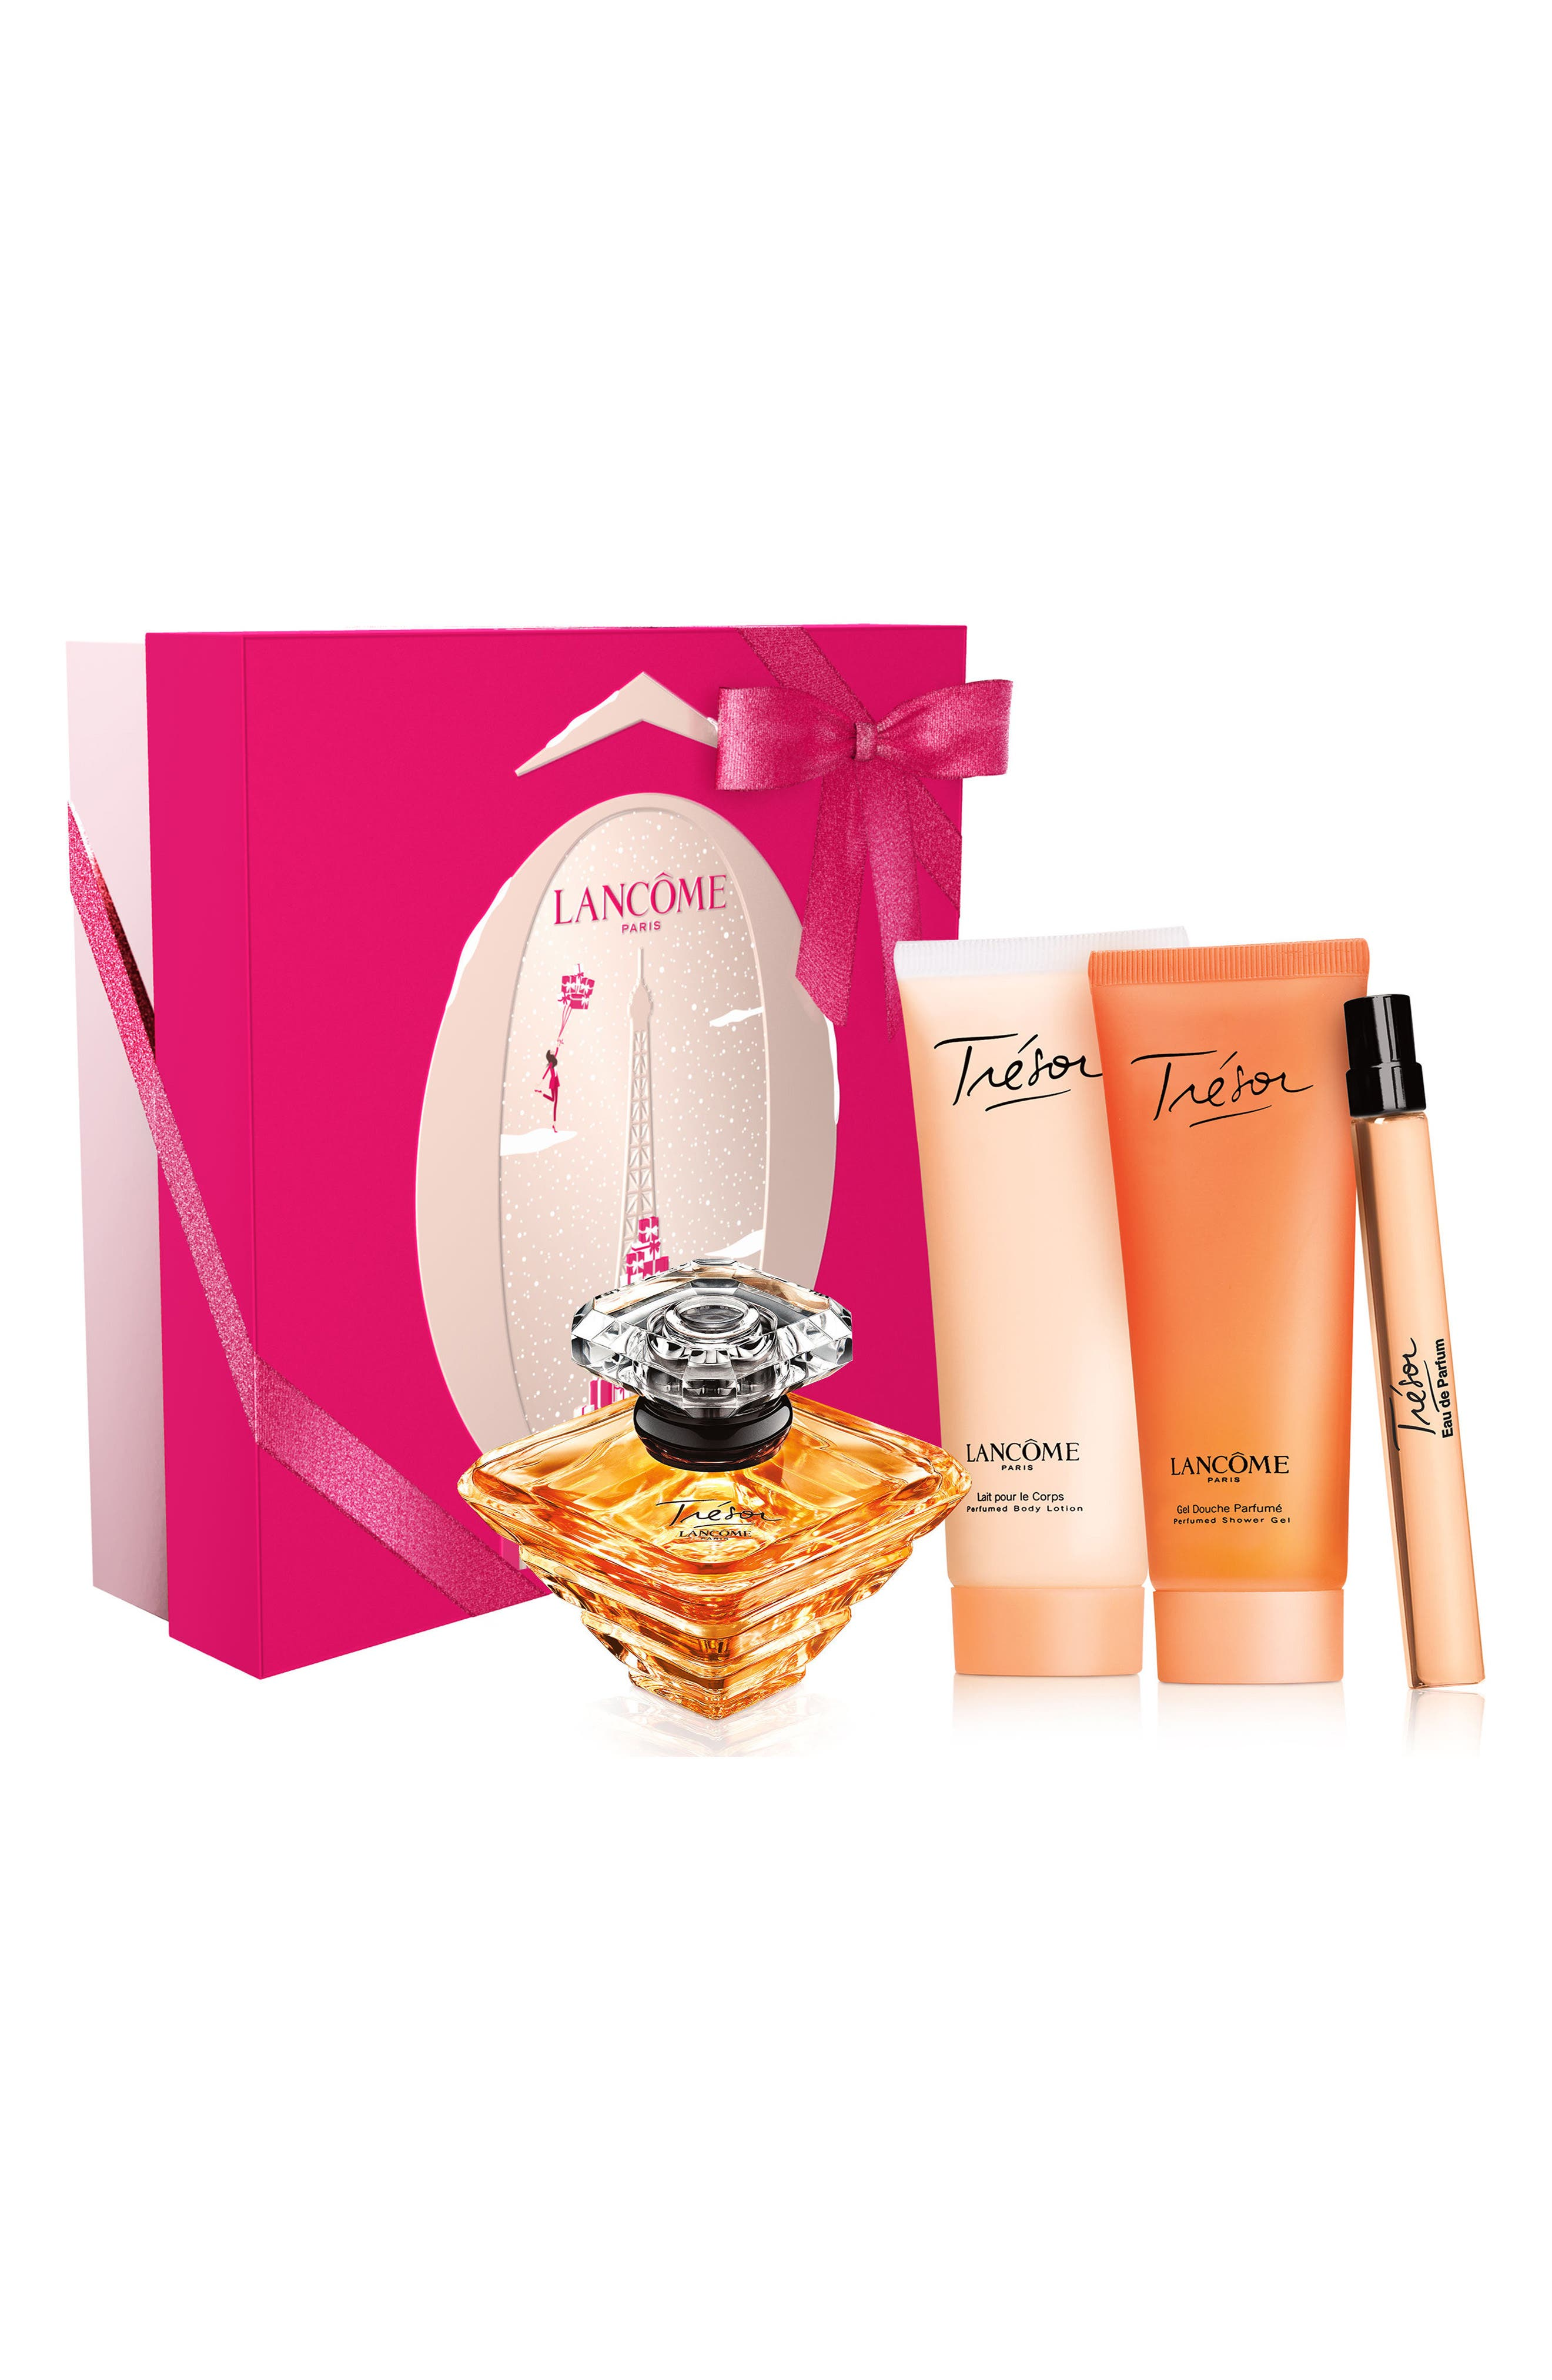 Lancôme Trésor Passions Set ($135.50 Value)